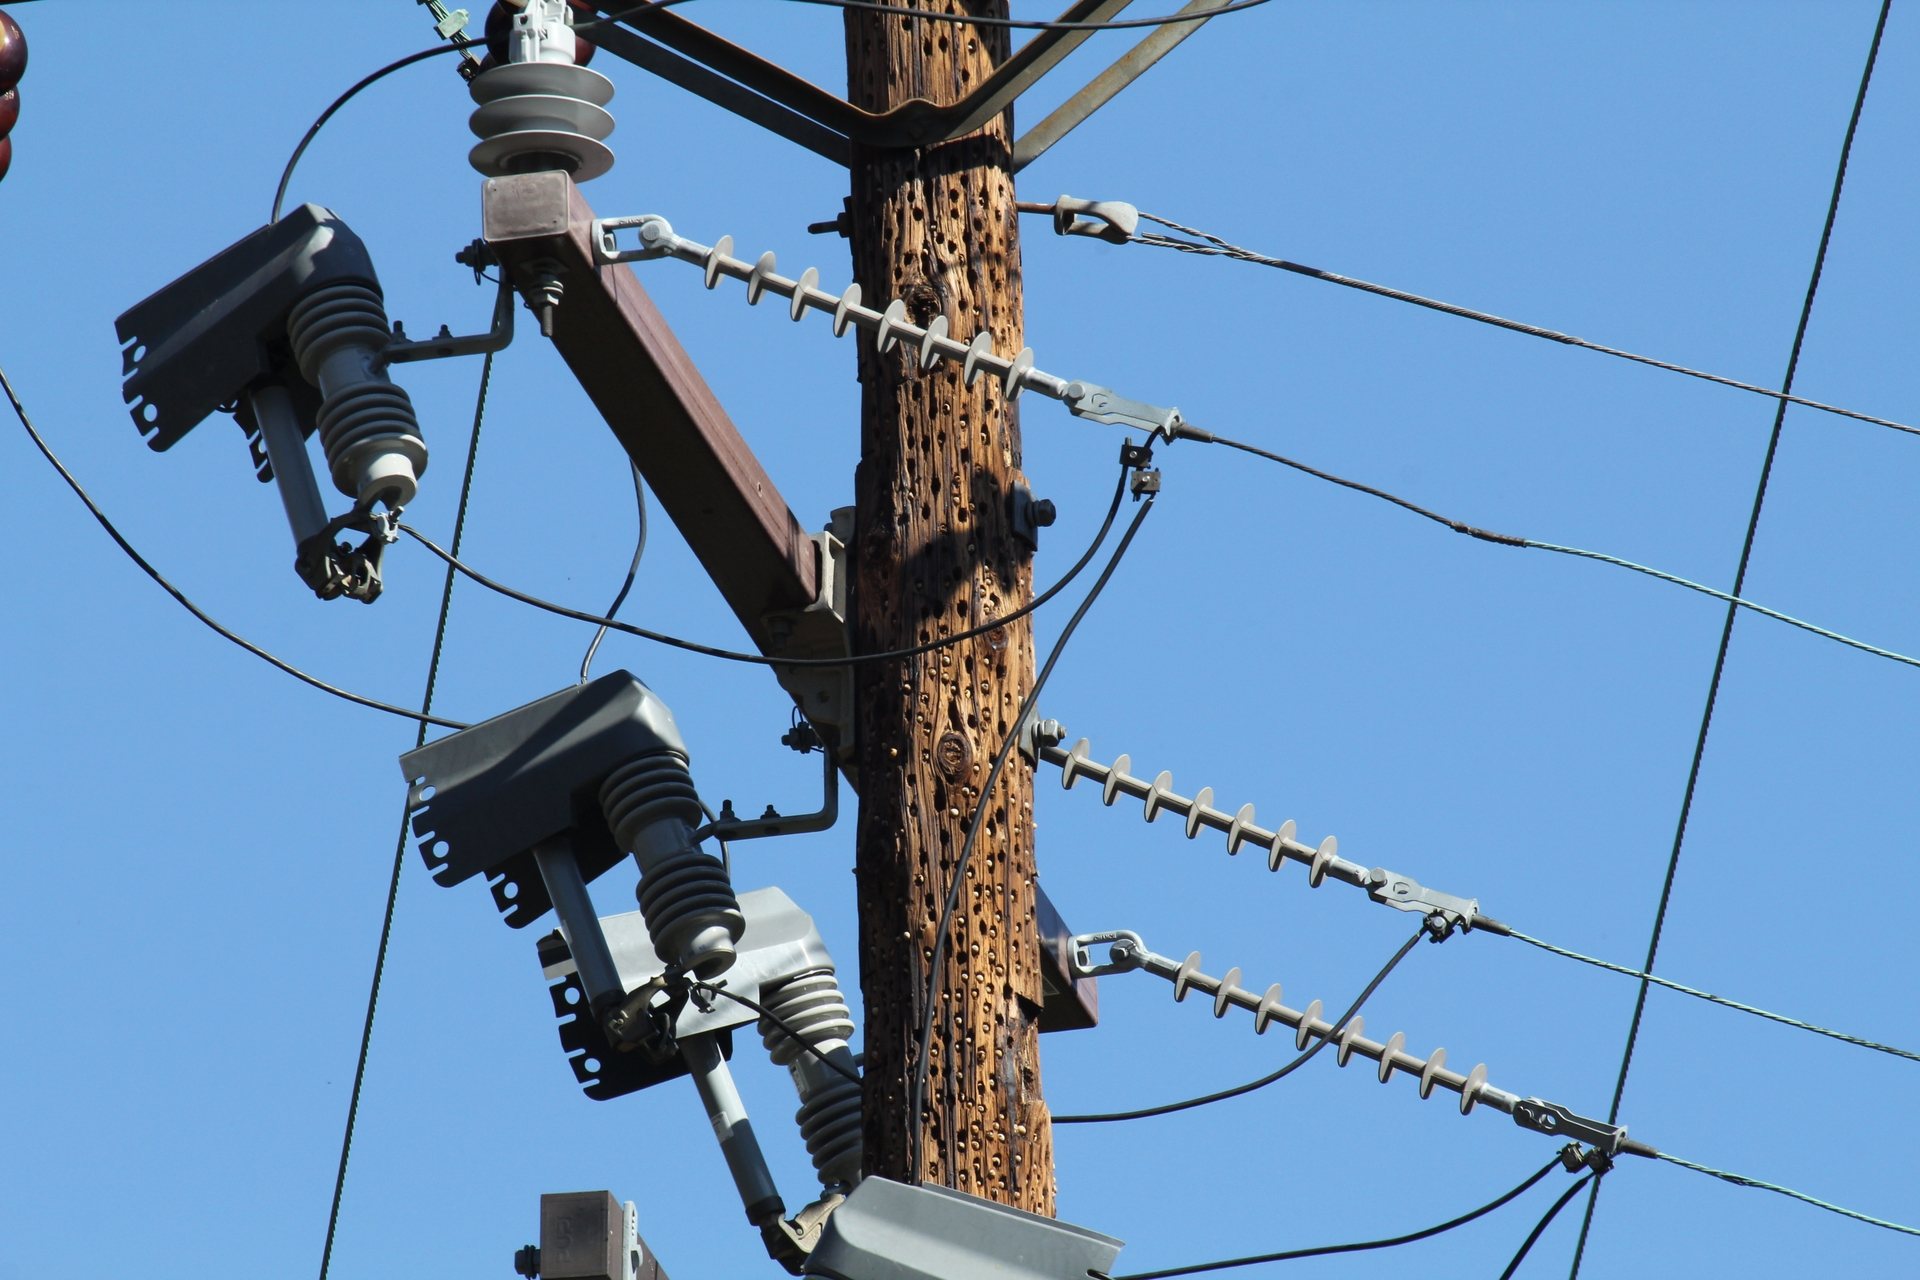 The collective drumming of an acorn woodpecker colony can cause quite a lot of damage to wooden utility poles.